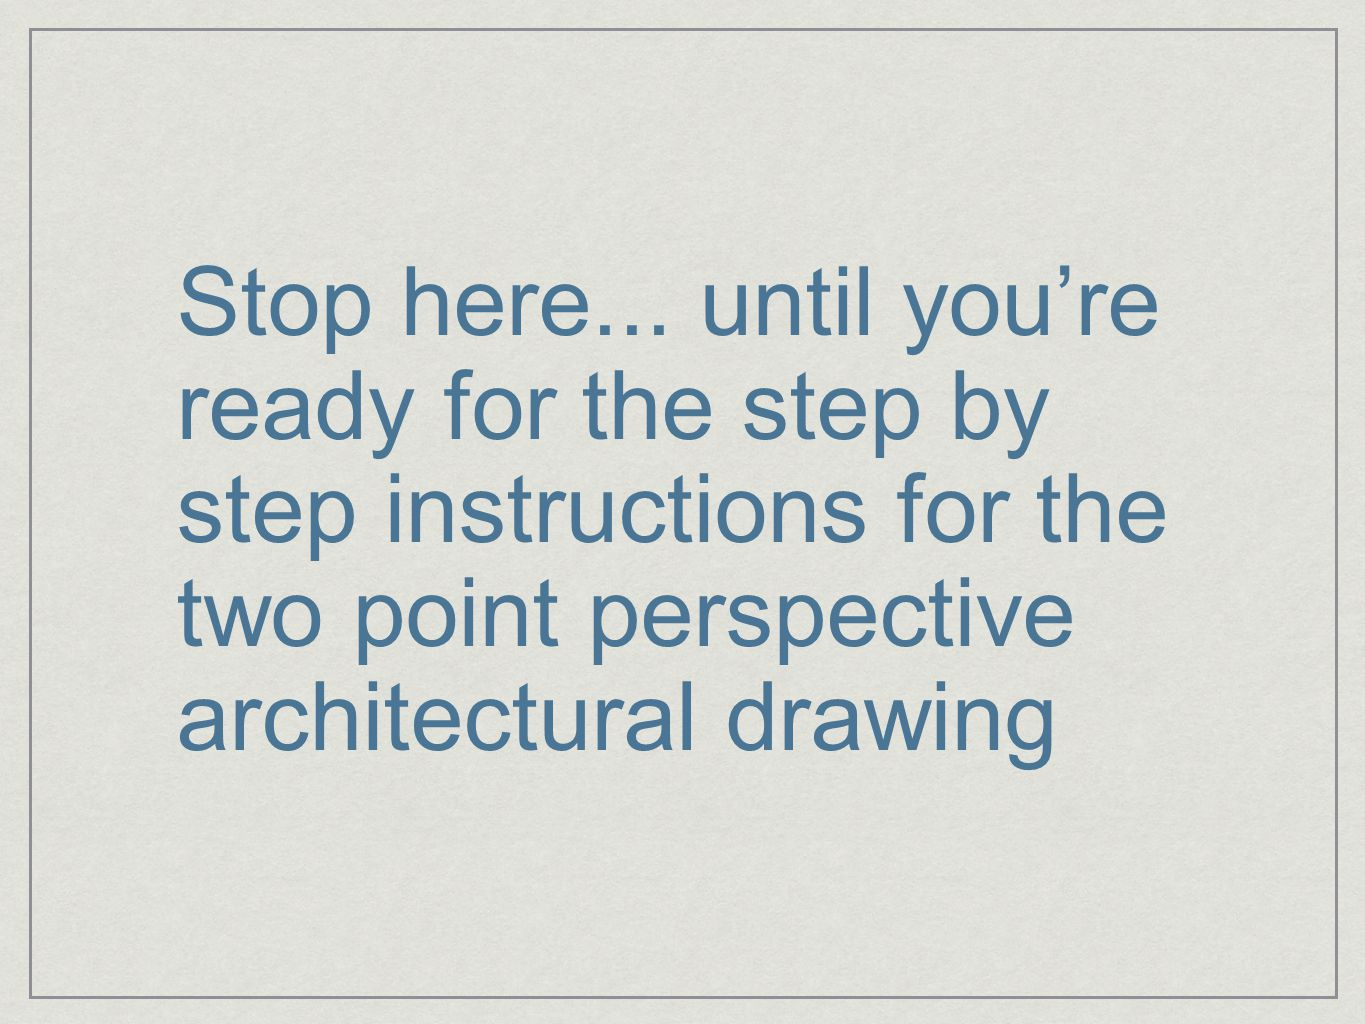 Stop here... until you're ready for the step by step instructions for the two point perspective architectural drawing